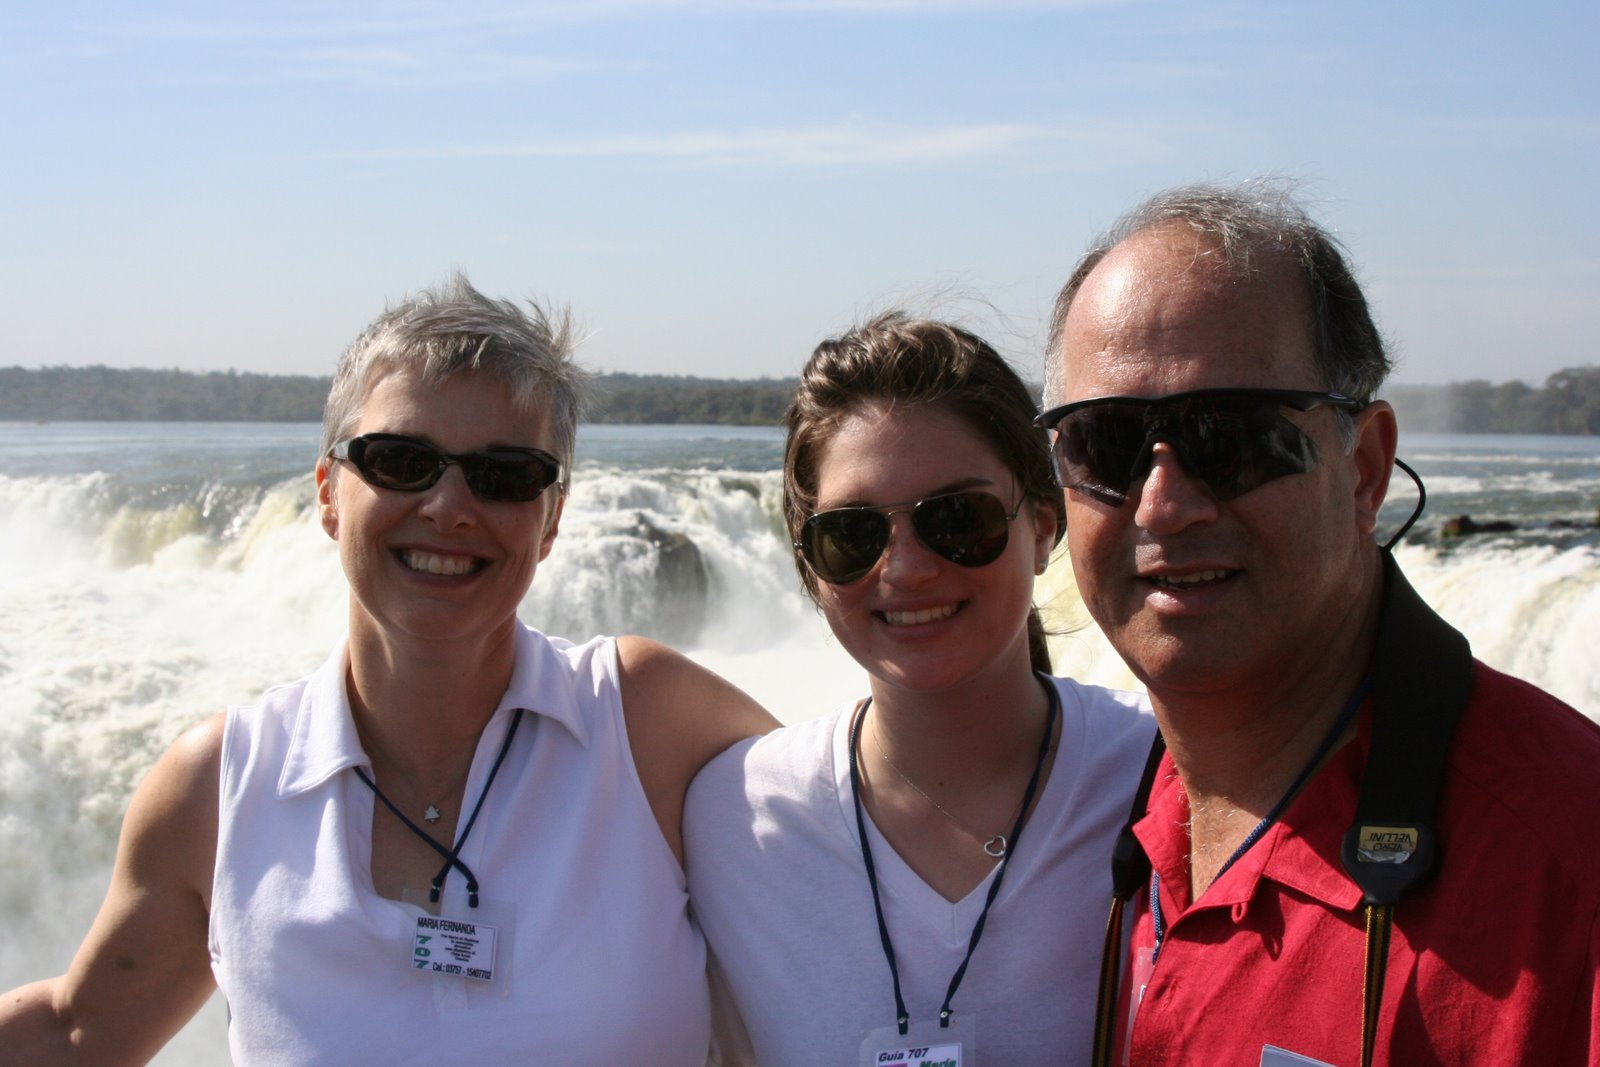 From left_  Marilyn (nee Prooth), Emily & Ralph Grunewald -- 2007, Iguazu Falls, Argentina